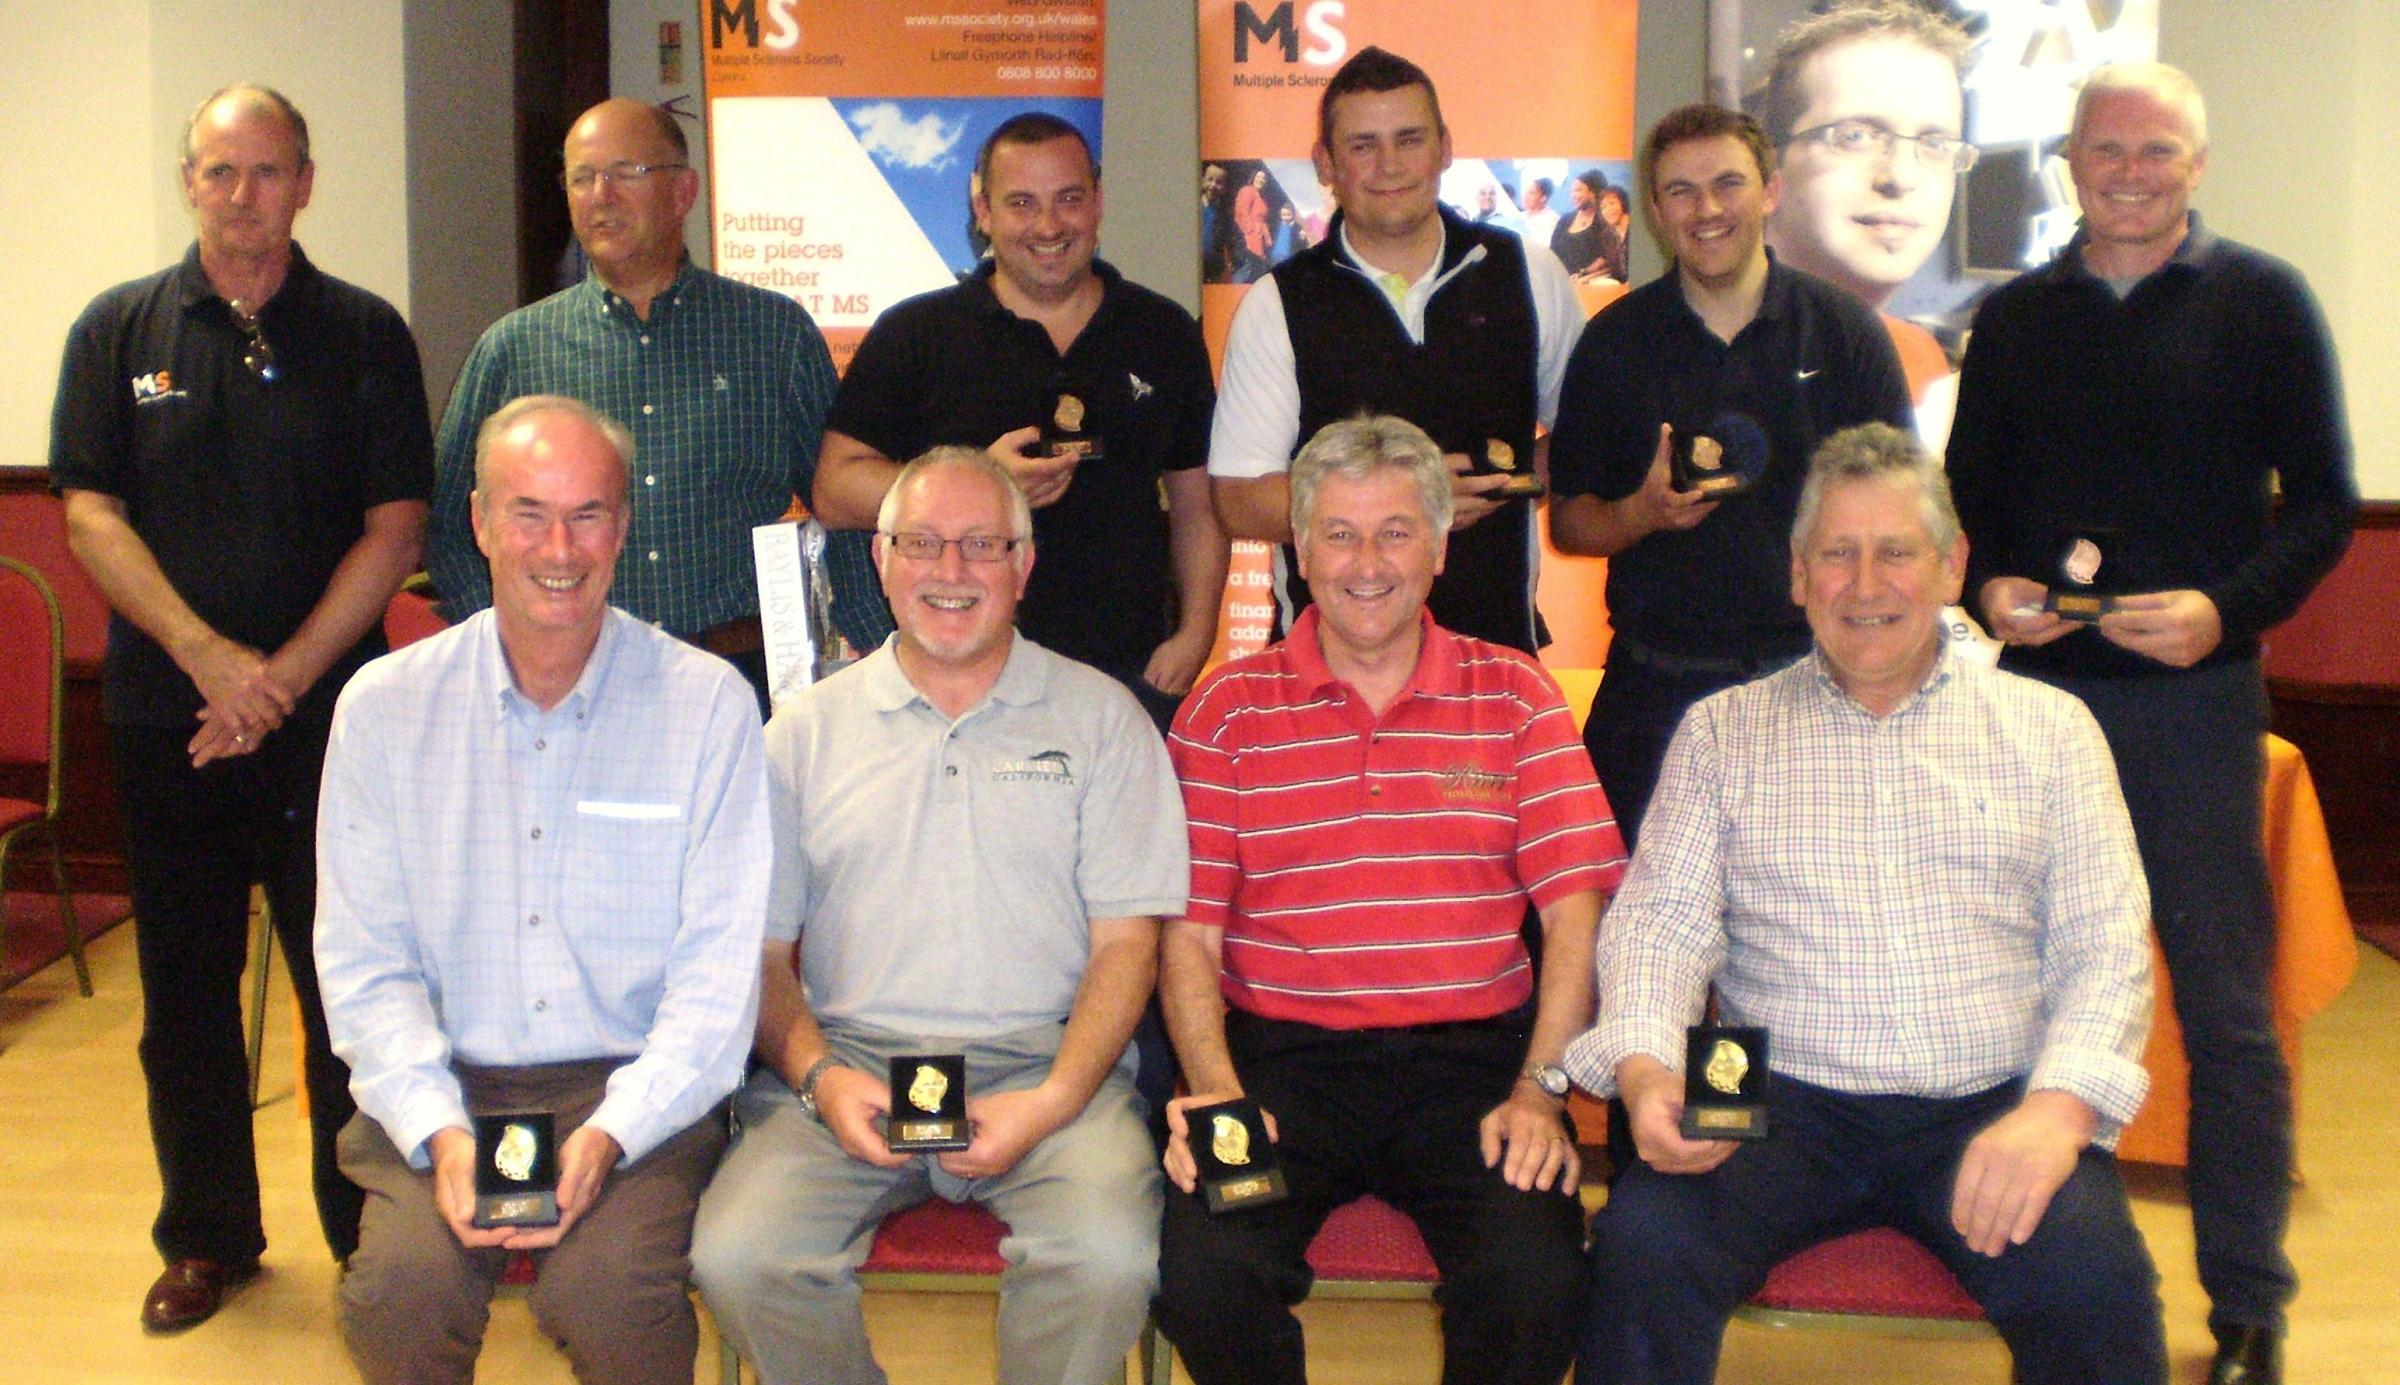 MAJOR CHAMPIONS: Winners from this year's MS Society Golf Day in Mountain Ash. Now in its 13th year, the event has raised more than £30,000 for the charity.